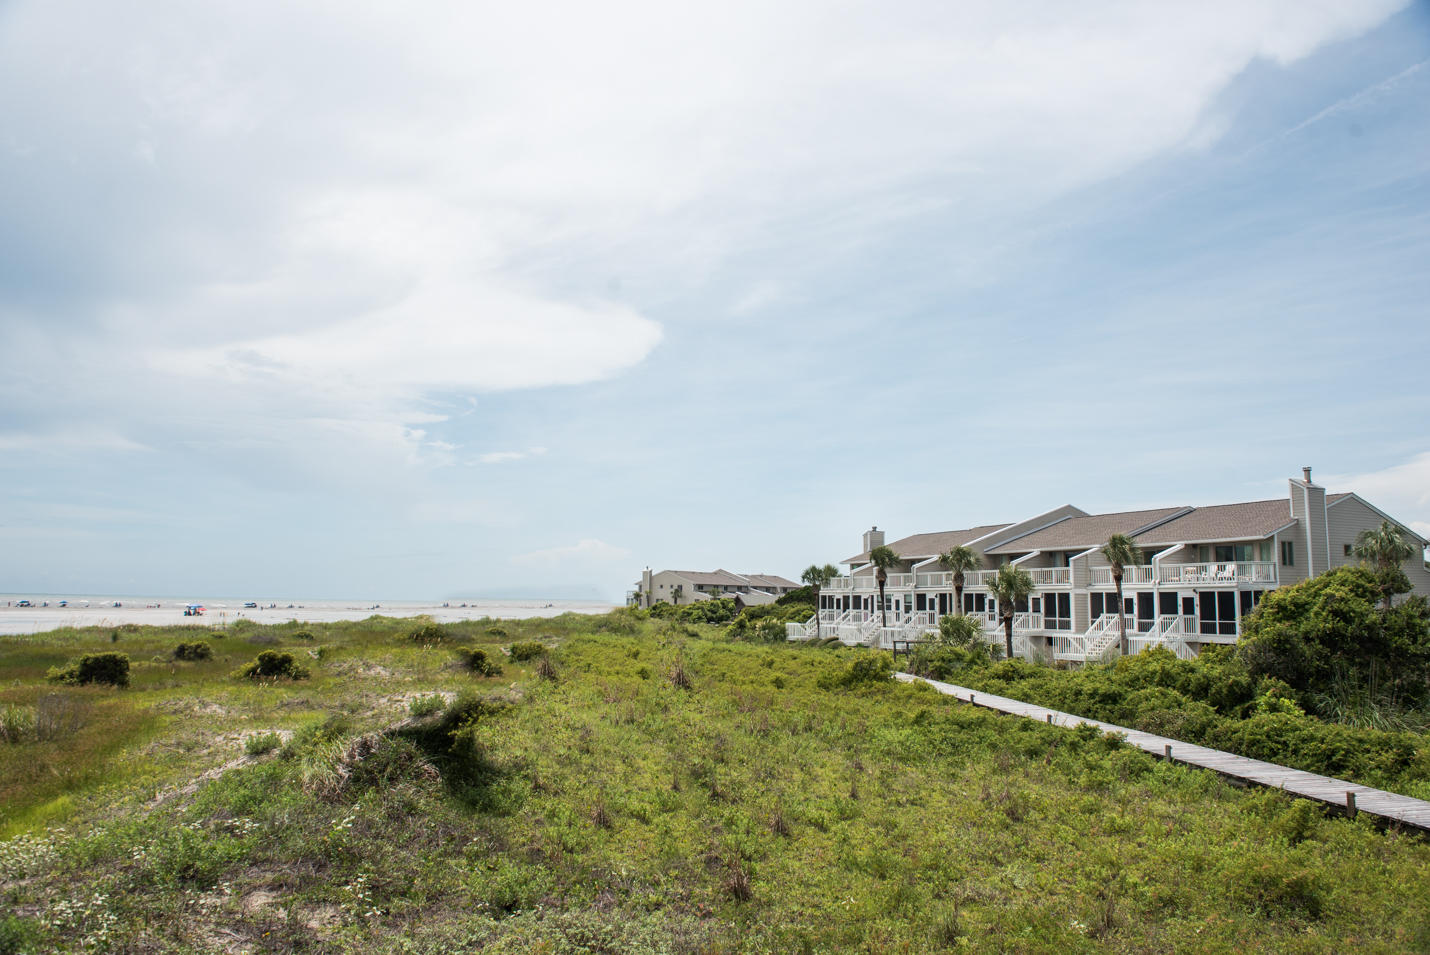 Beach Club Villas Homes For Sale - 66 Beach Club Villas, Isle of Palms, SC - 3